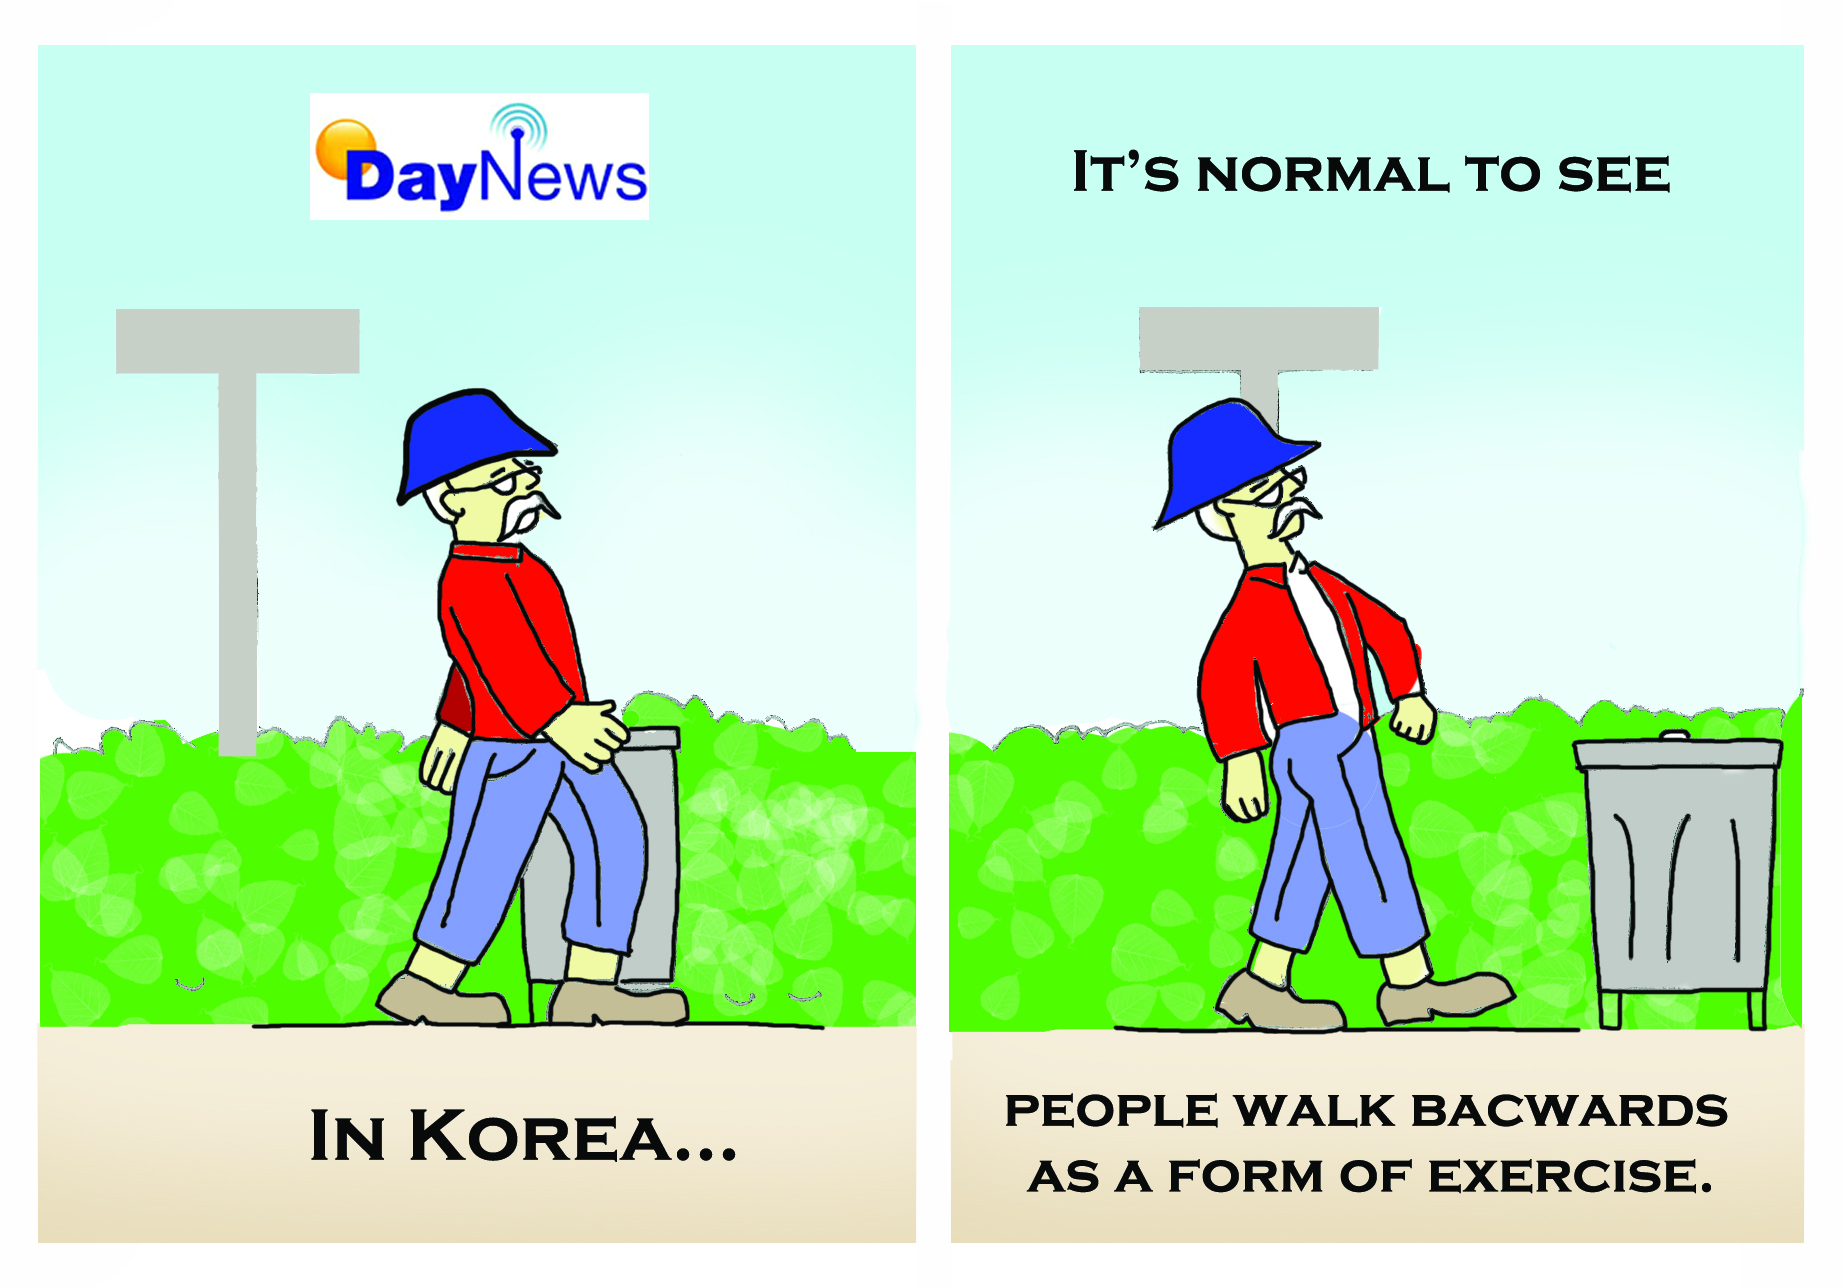 Korea - Walking Backwards - Day News Cartoon Of The Day